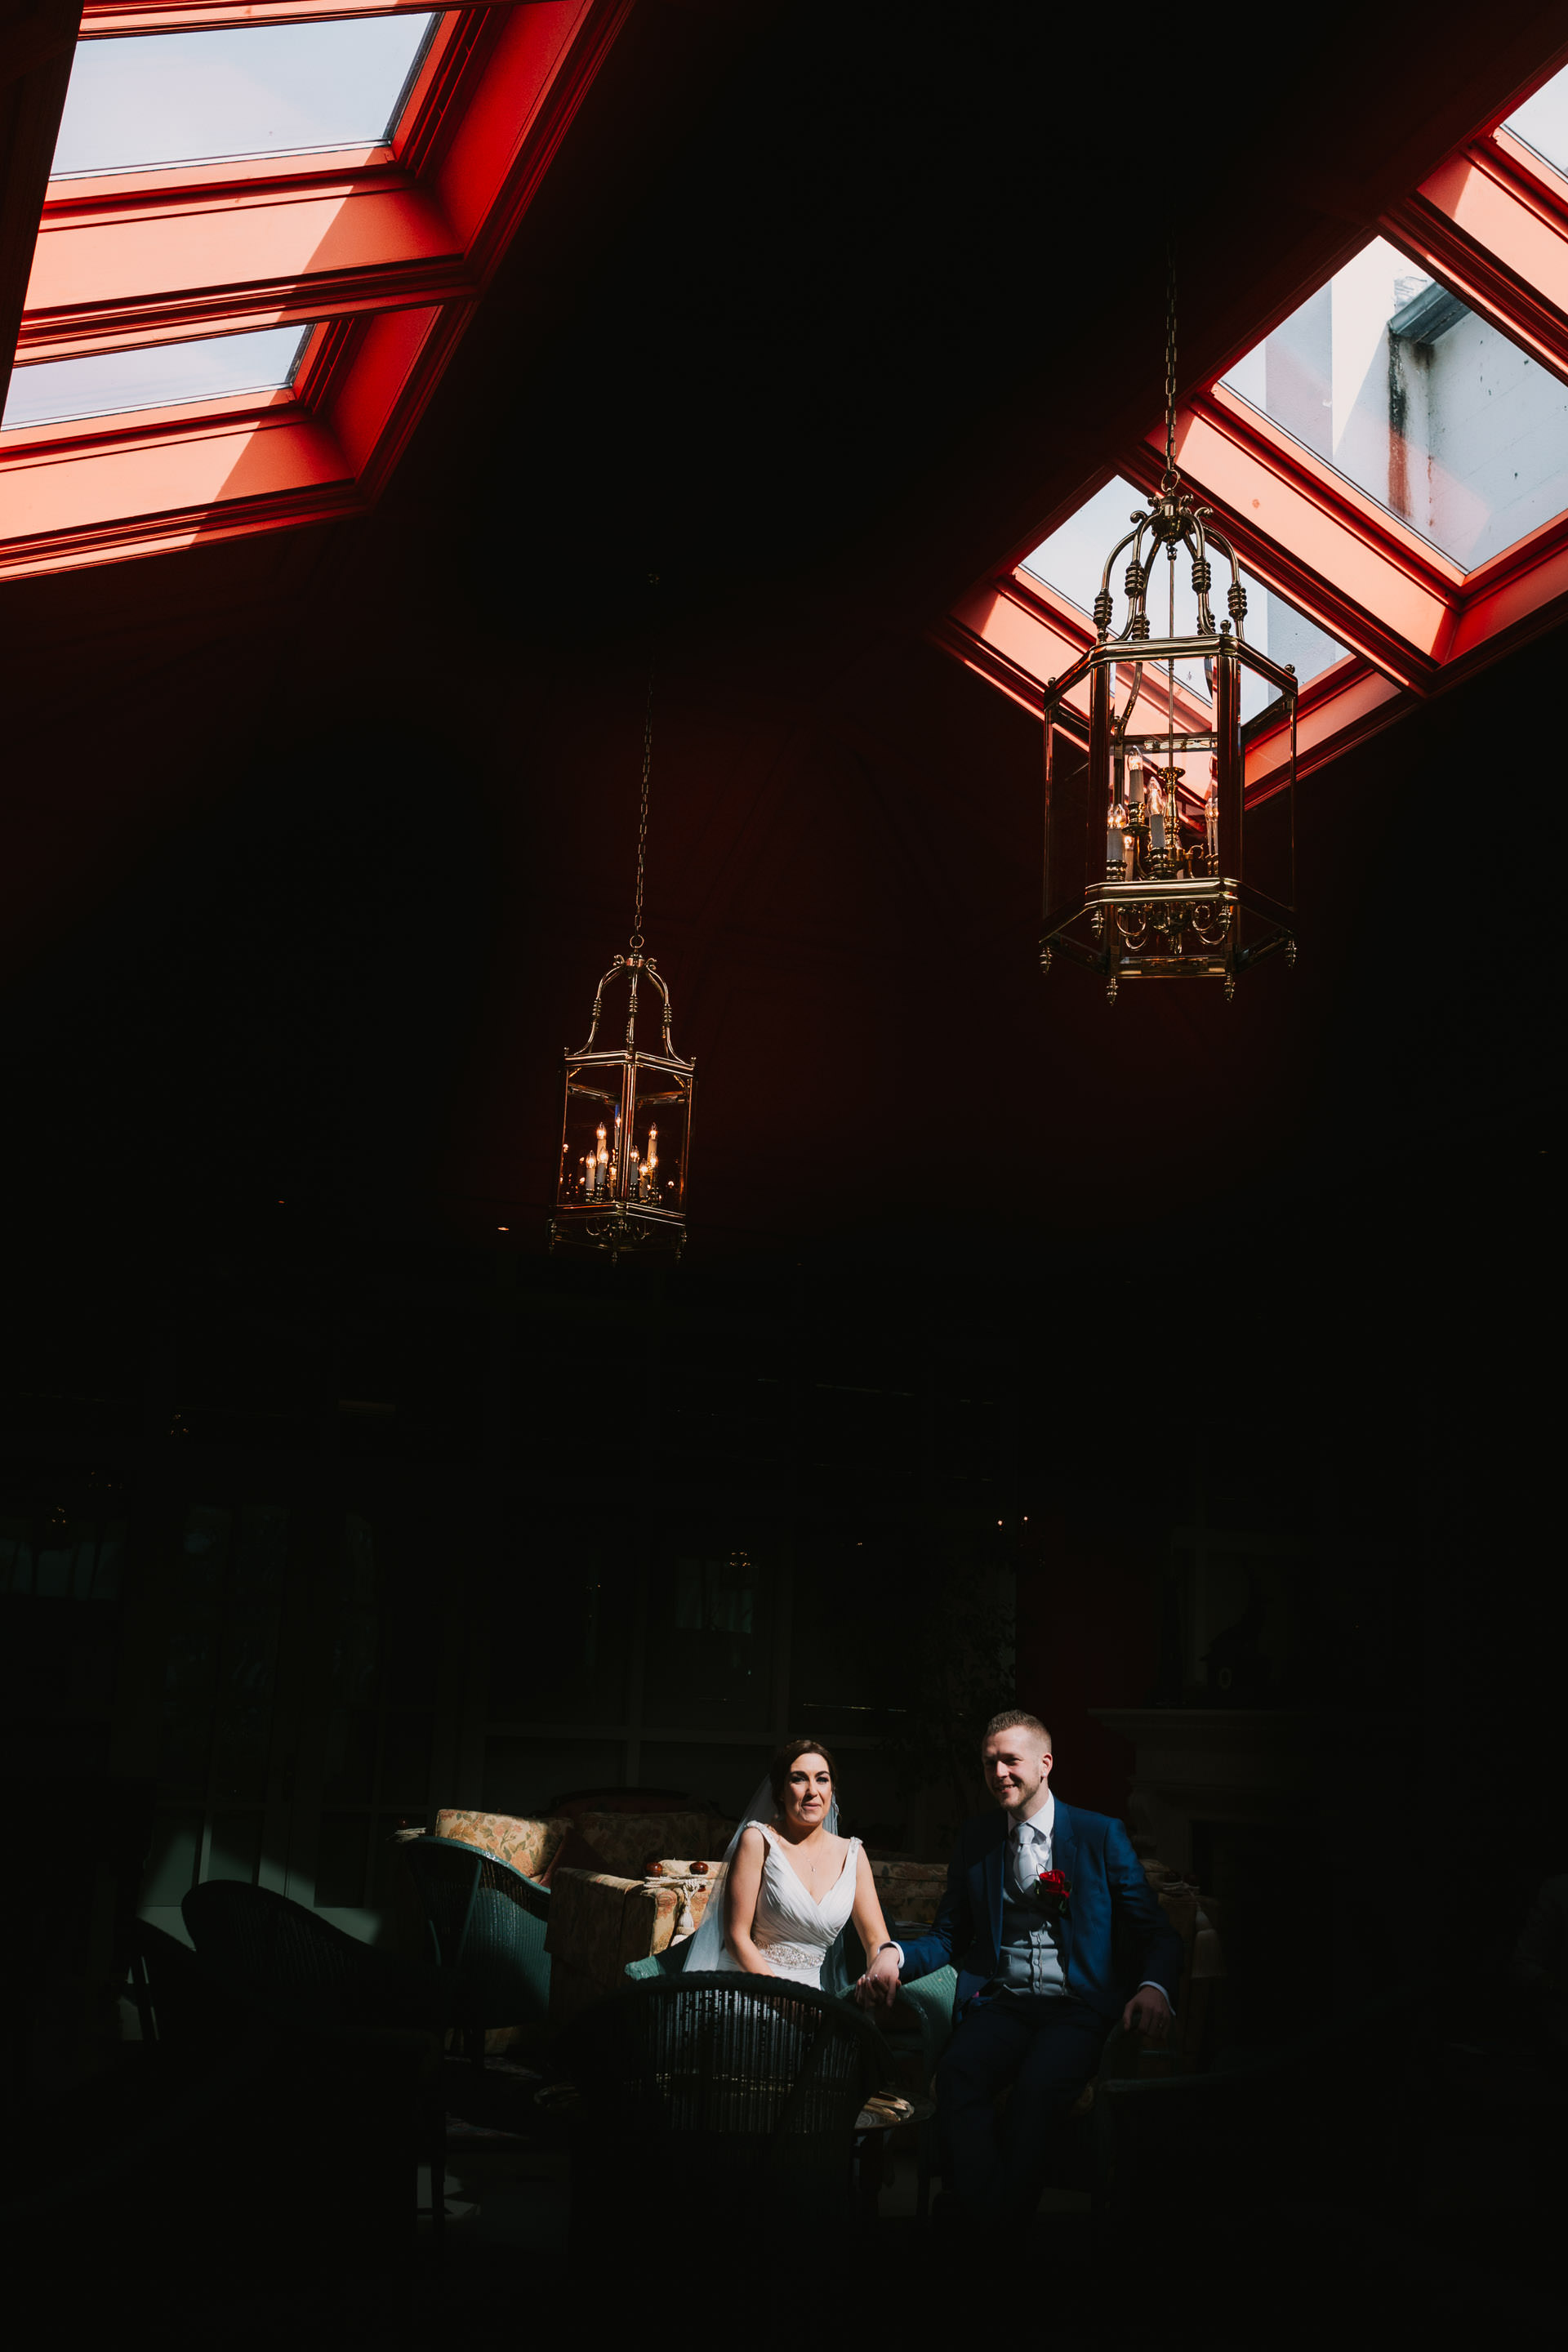 Barberstown_Castle_Wedding_Photographer_Livia_Figueiredo_410.jpg